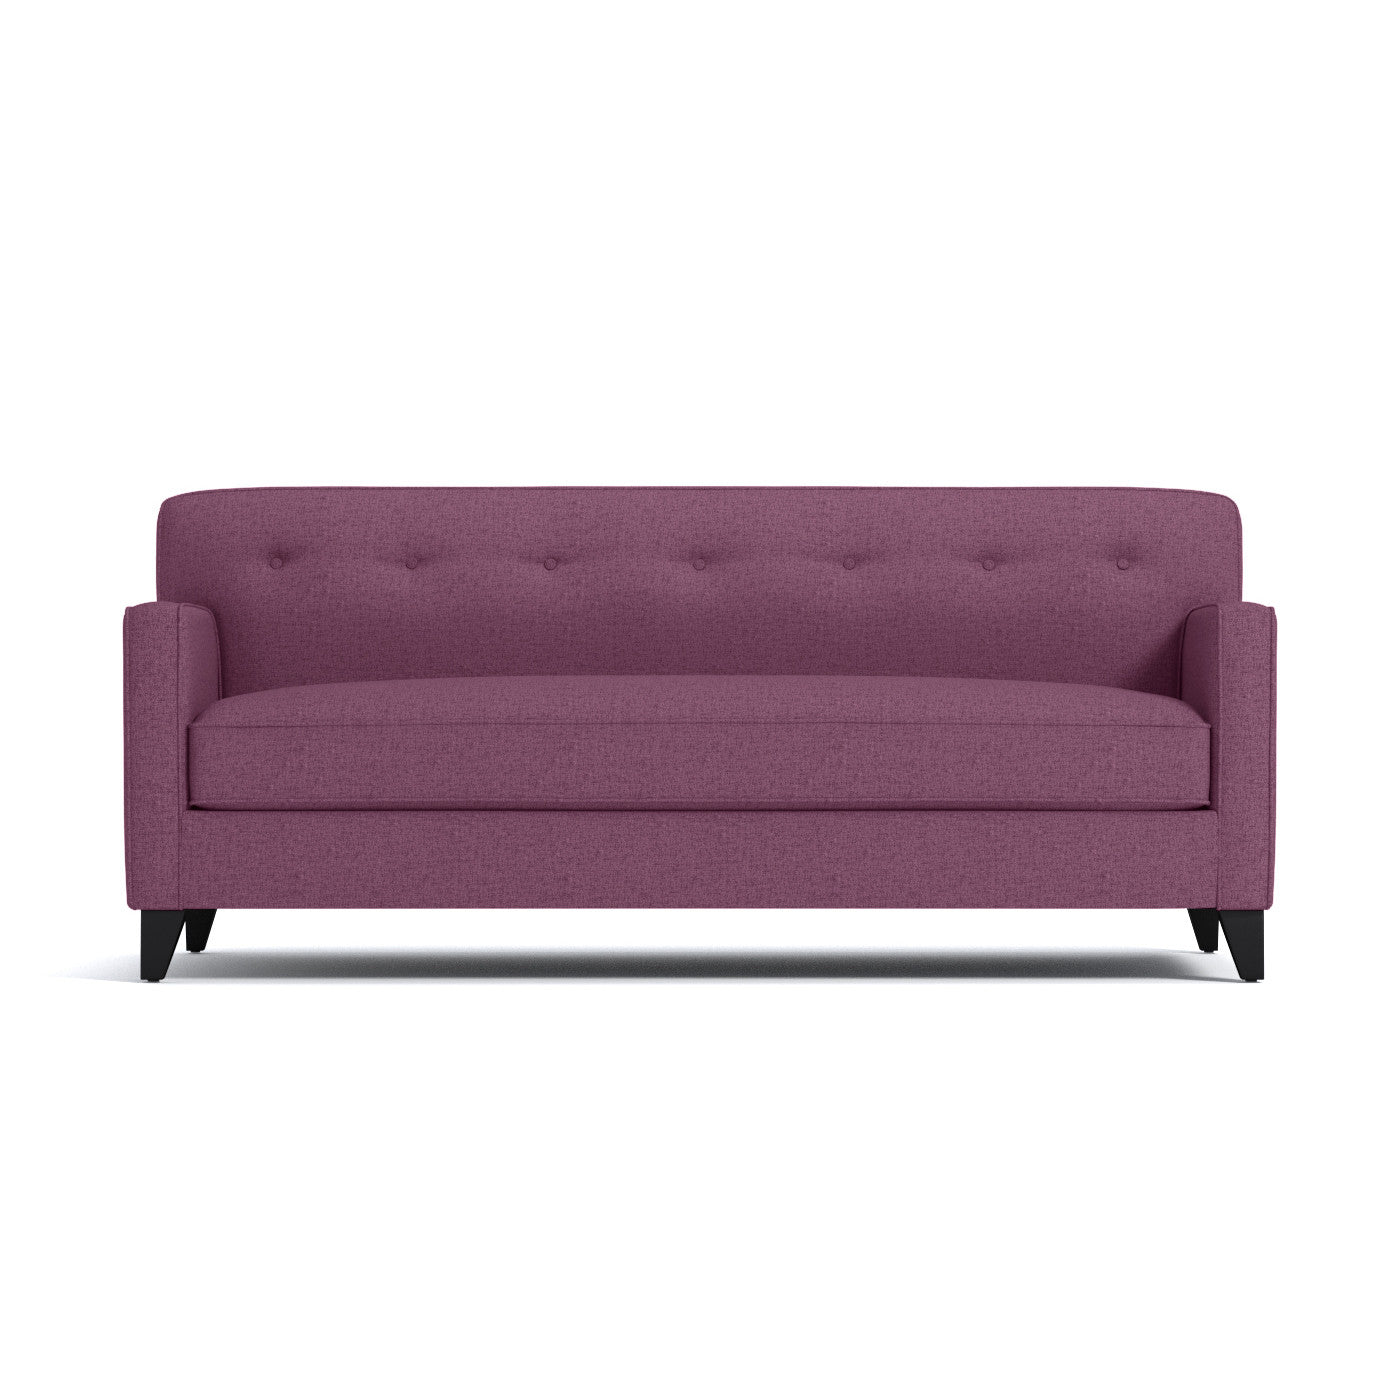 Harrison Sofa From Kyle Schuneman CHOICE OF FABRICS